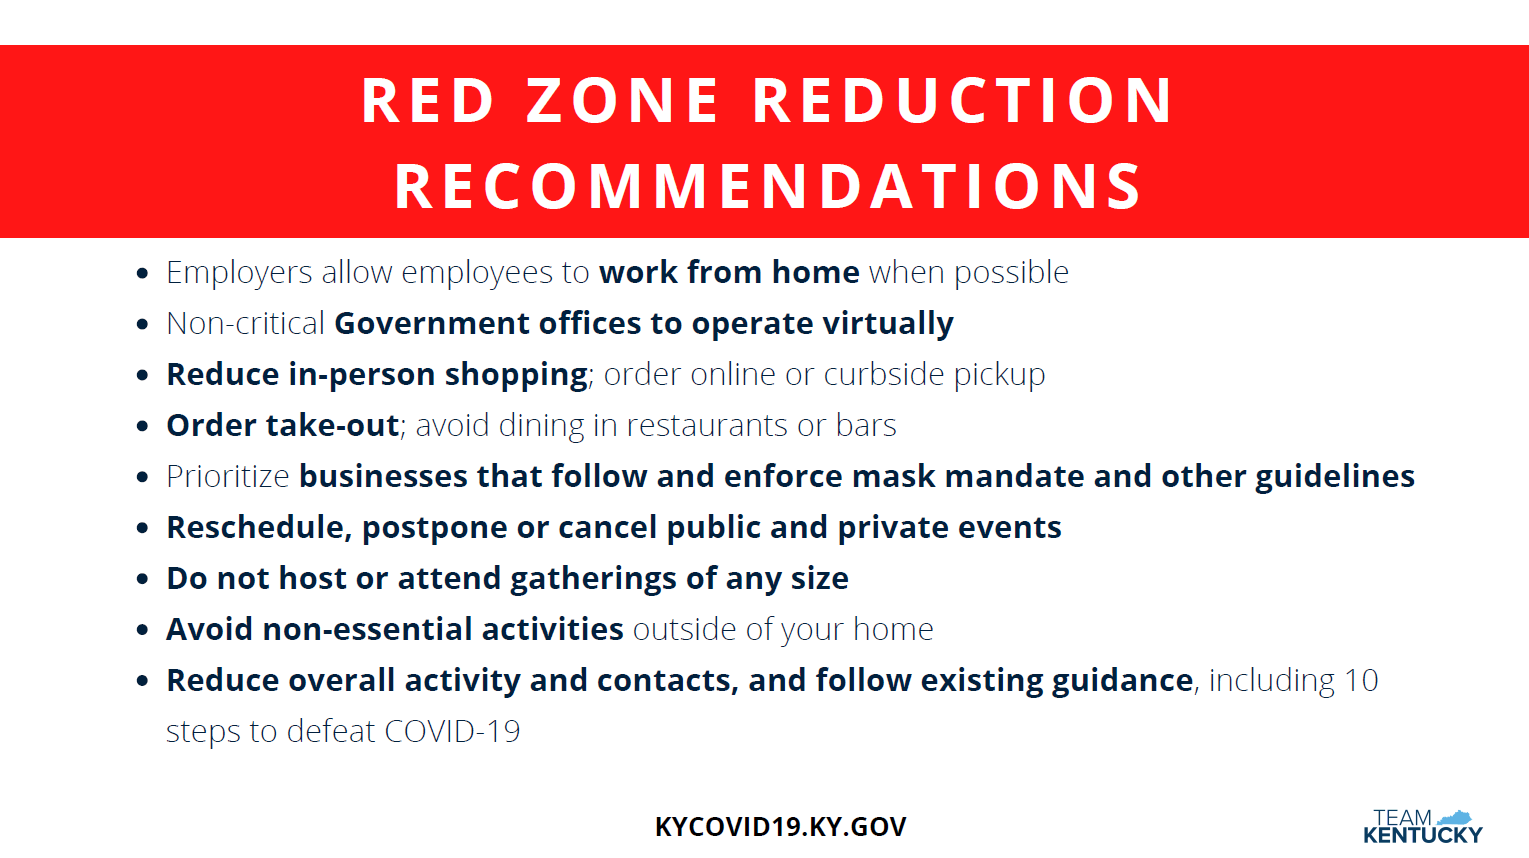 Red Zone Recommendations